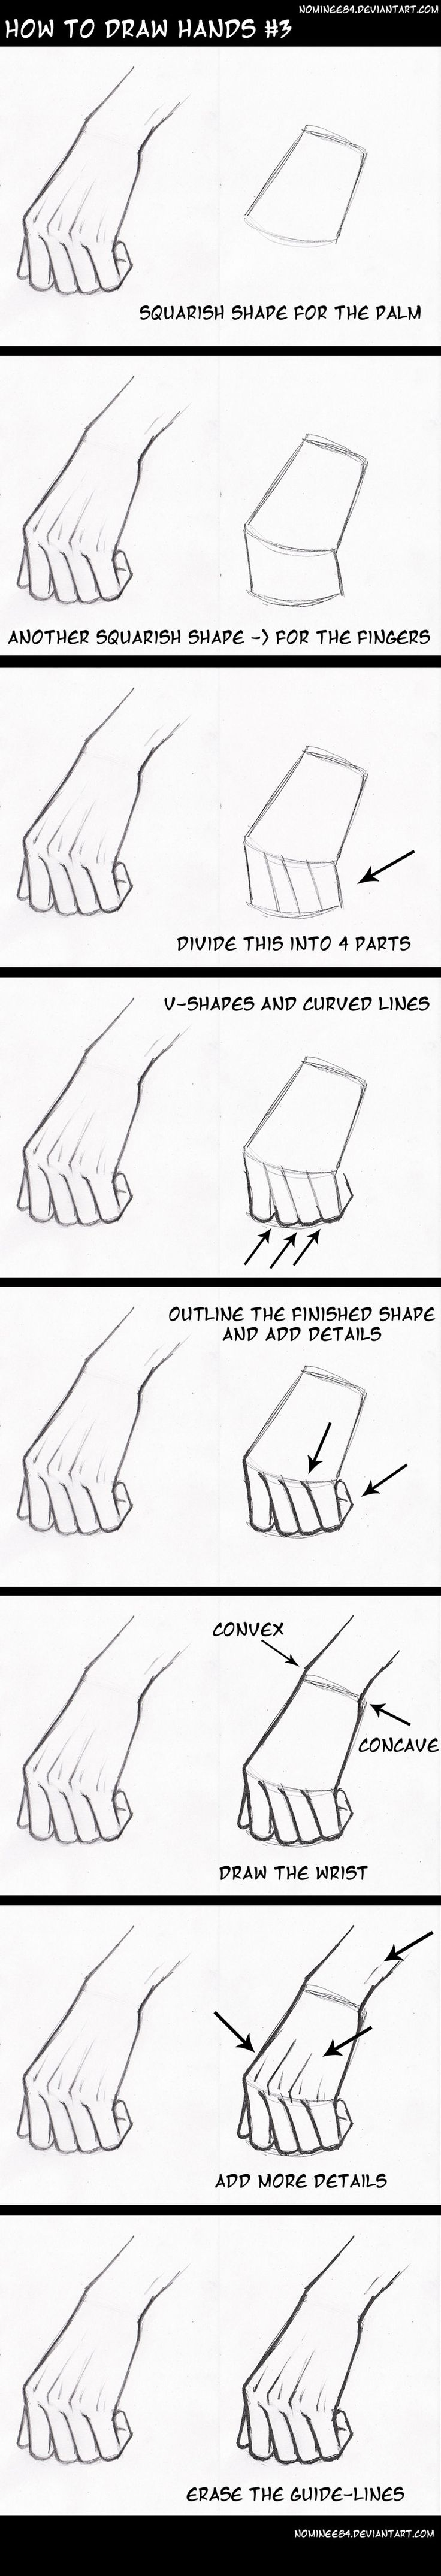 25 unique twitter help ideas on pinterest how to draw hands